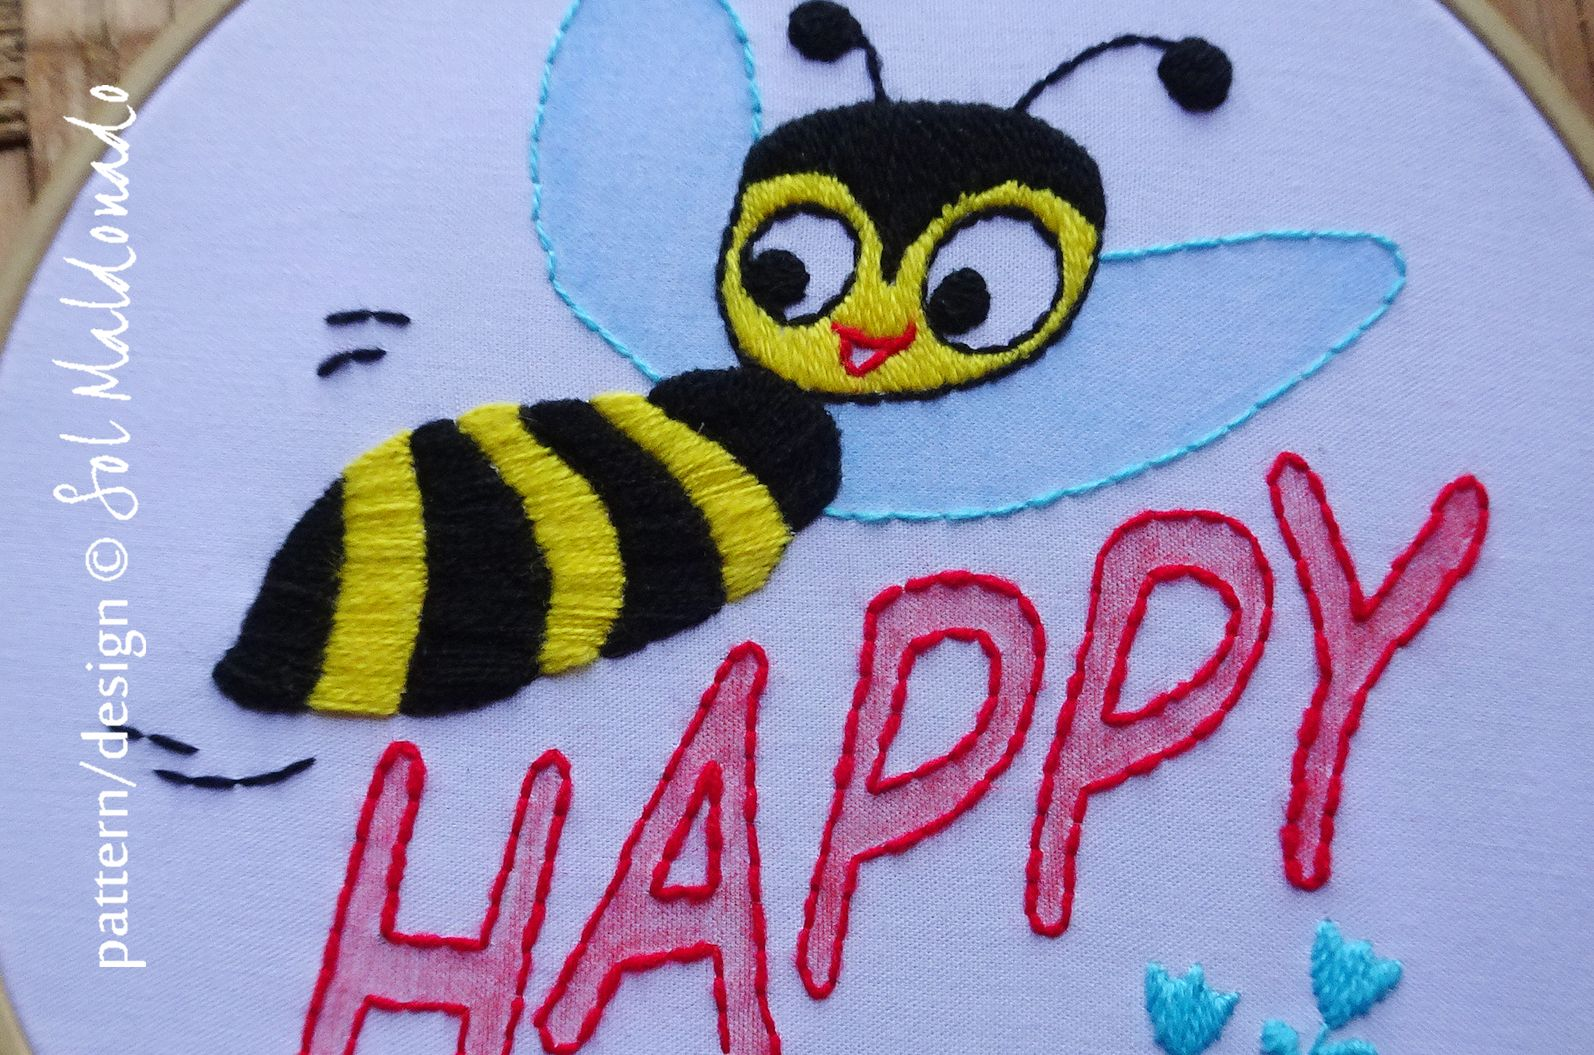 Bee Happy detail of an easy hand embroidery hoop, perfect for kids room! #embroiderypattern #handembroidery #beehappy #embroideryquotes #handembroiderylove #embroideryhoopart #childrenembroidery #embroideryaddict #bordadoamao #bordadoamano #bordados #bordadomejicano #learnembroidery #embroiderydesign #modernembroidery #embroiderydiy #hoopart #borduuwek #broderie #bordadolivre #riscoparabordado #embroiderylife #embroiderybeginner #stitching #stickerei